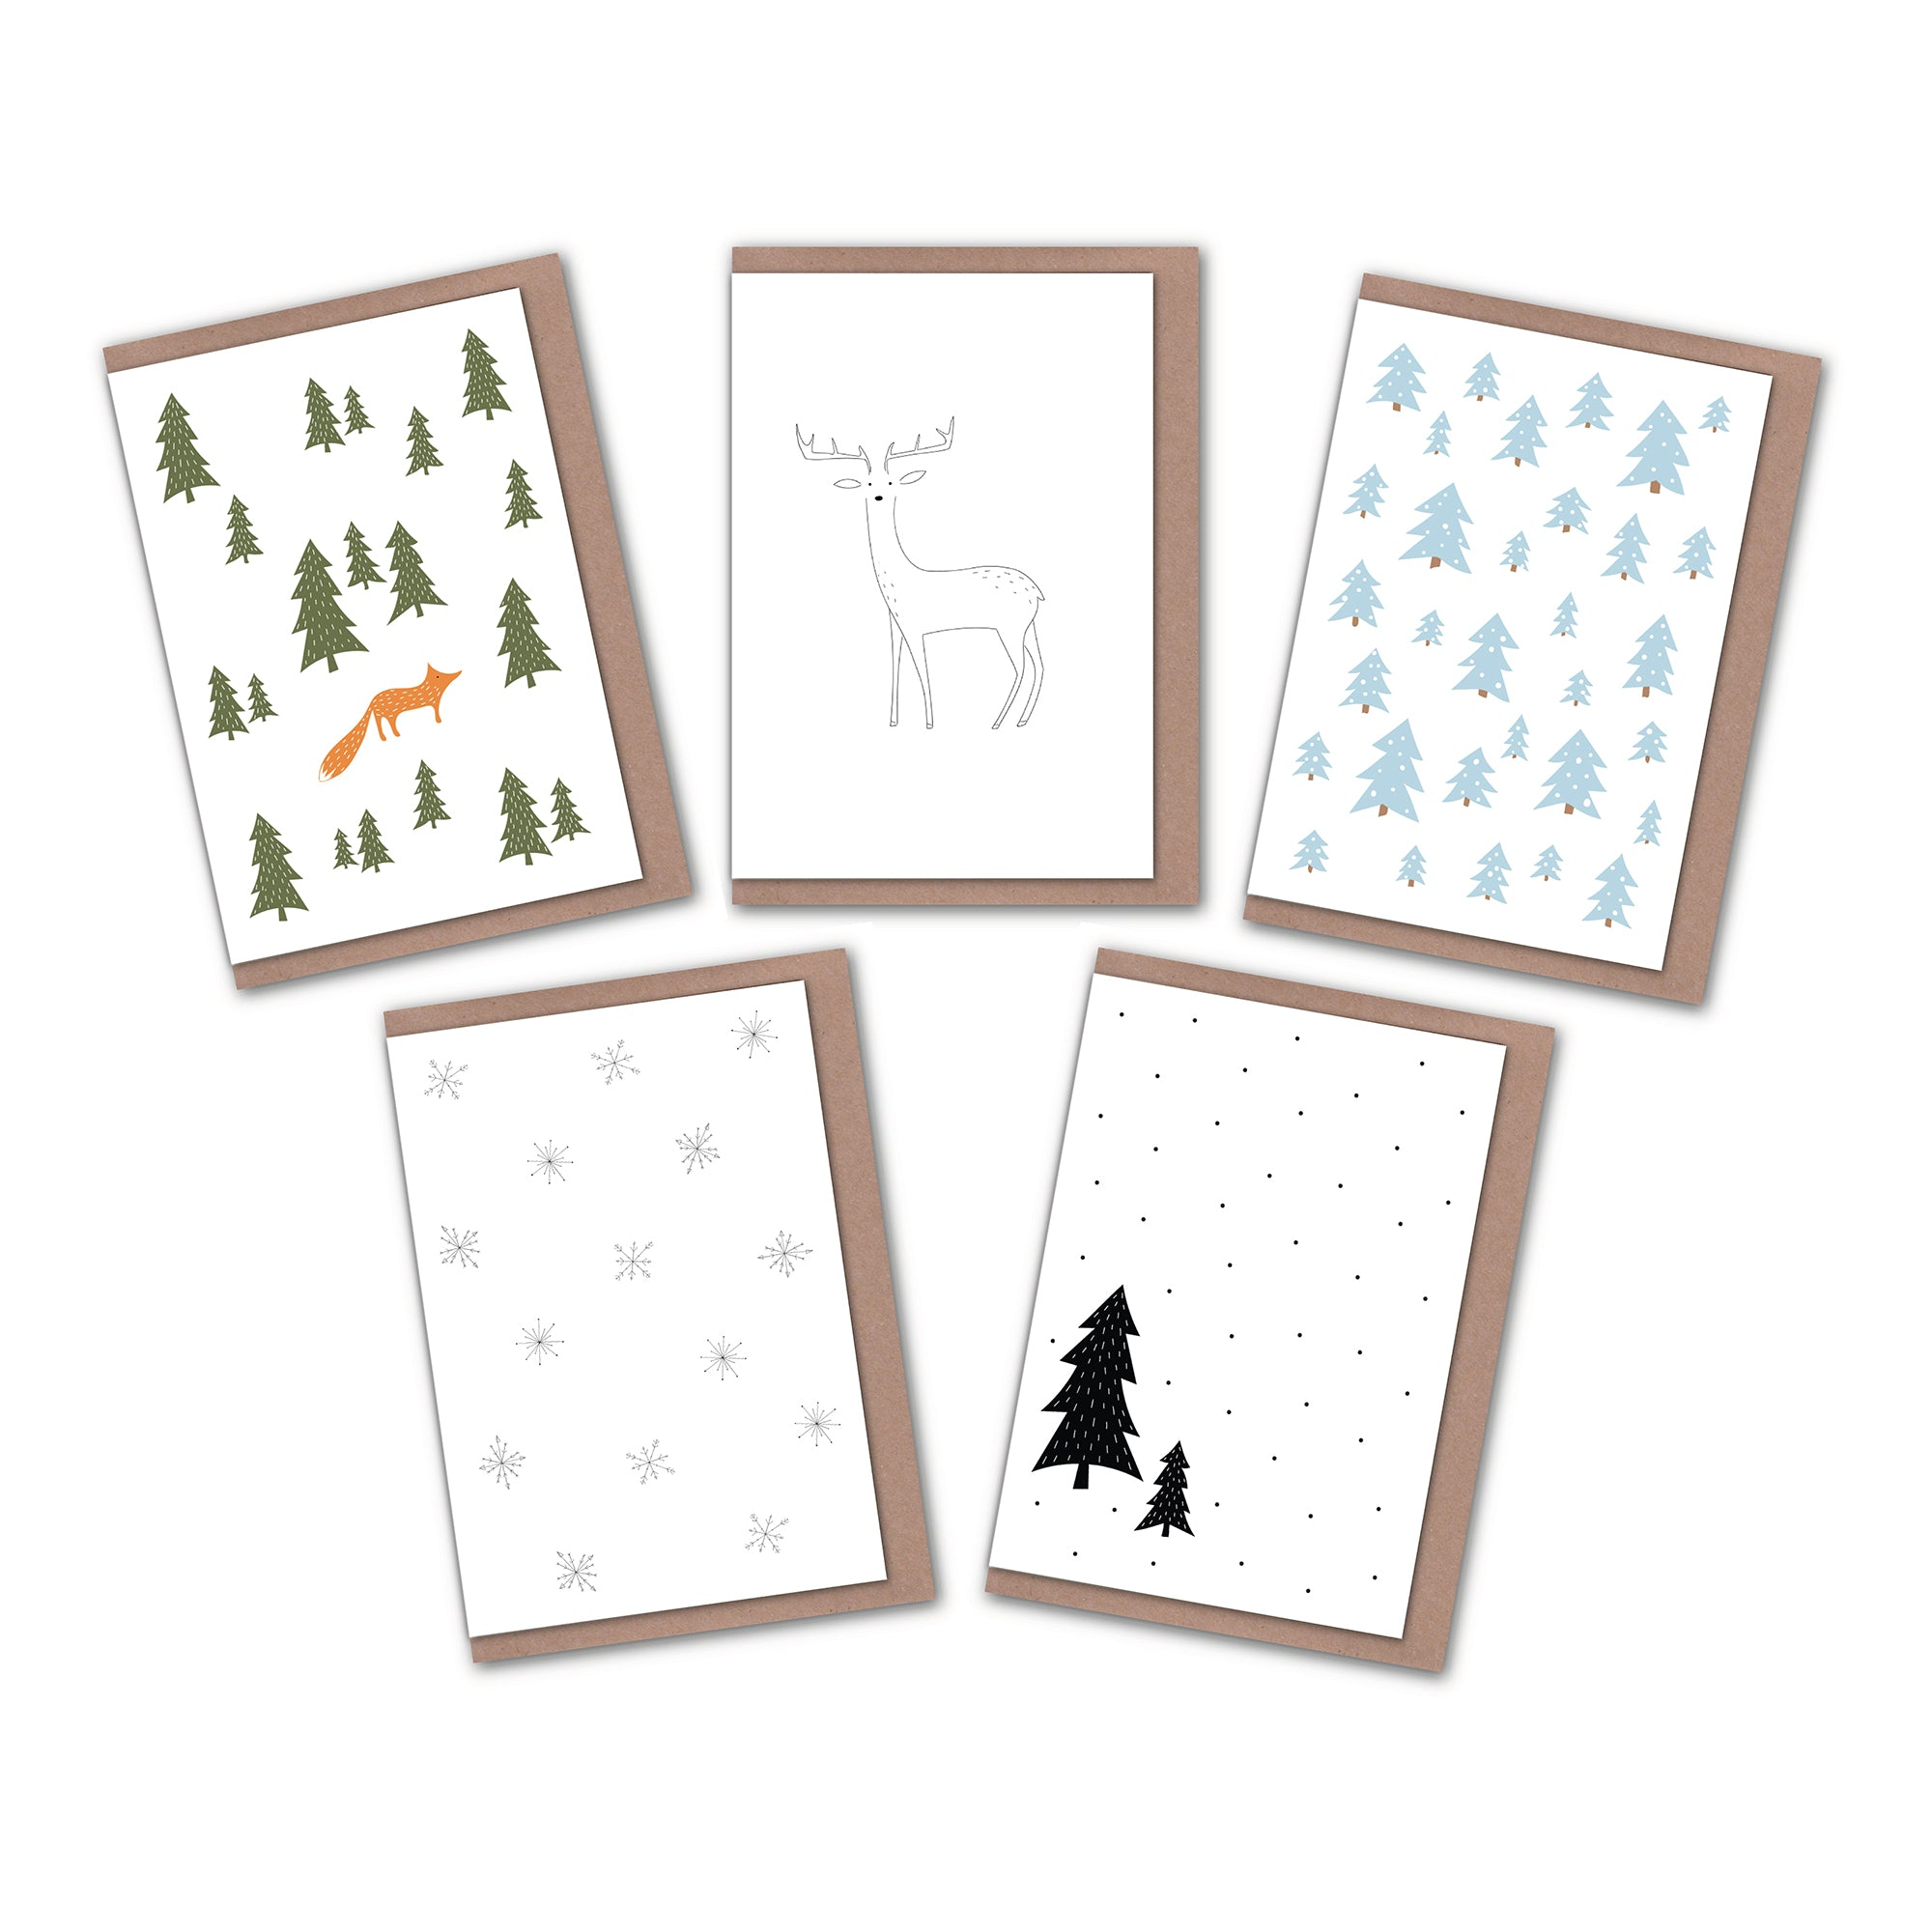 pack of 5 minimalist Christmas cards elemente design